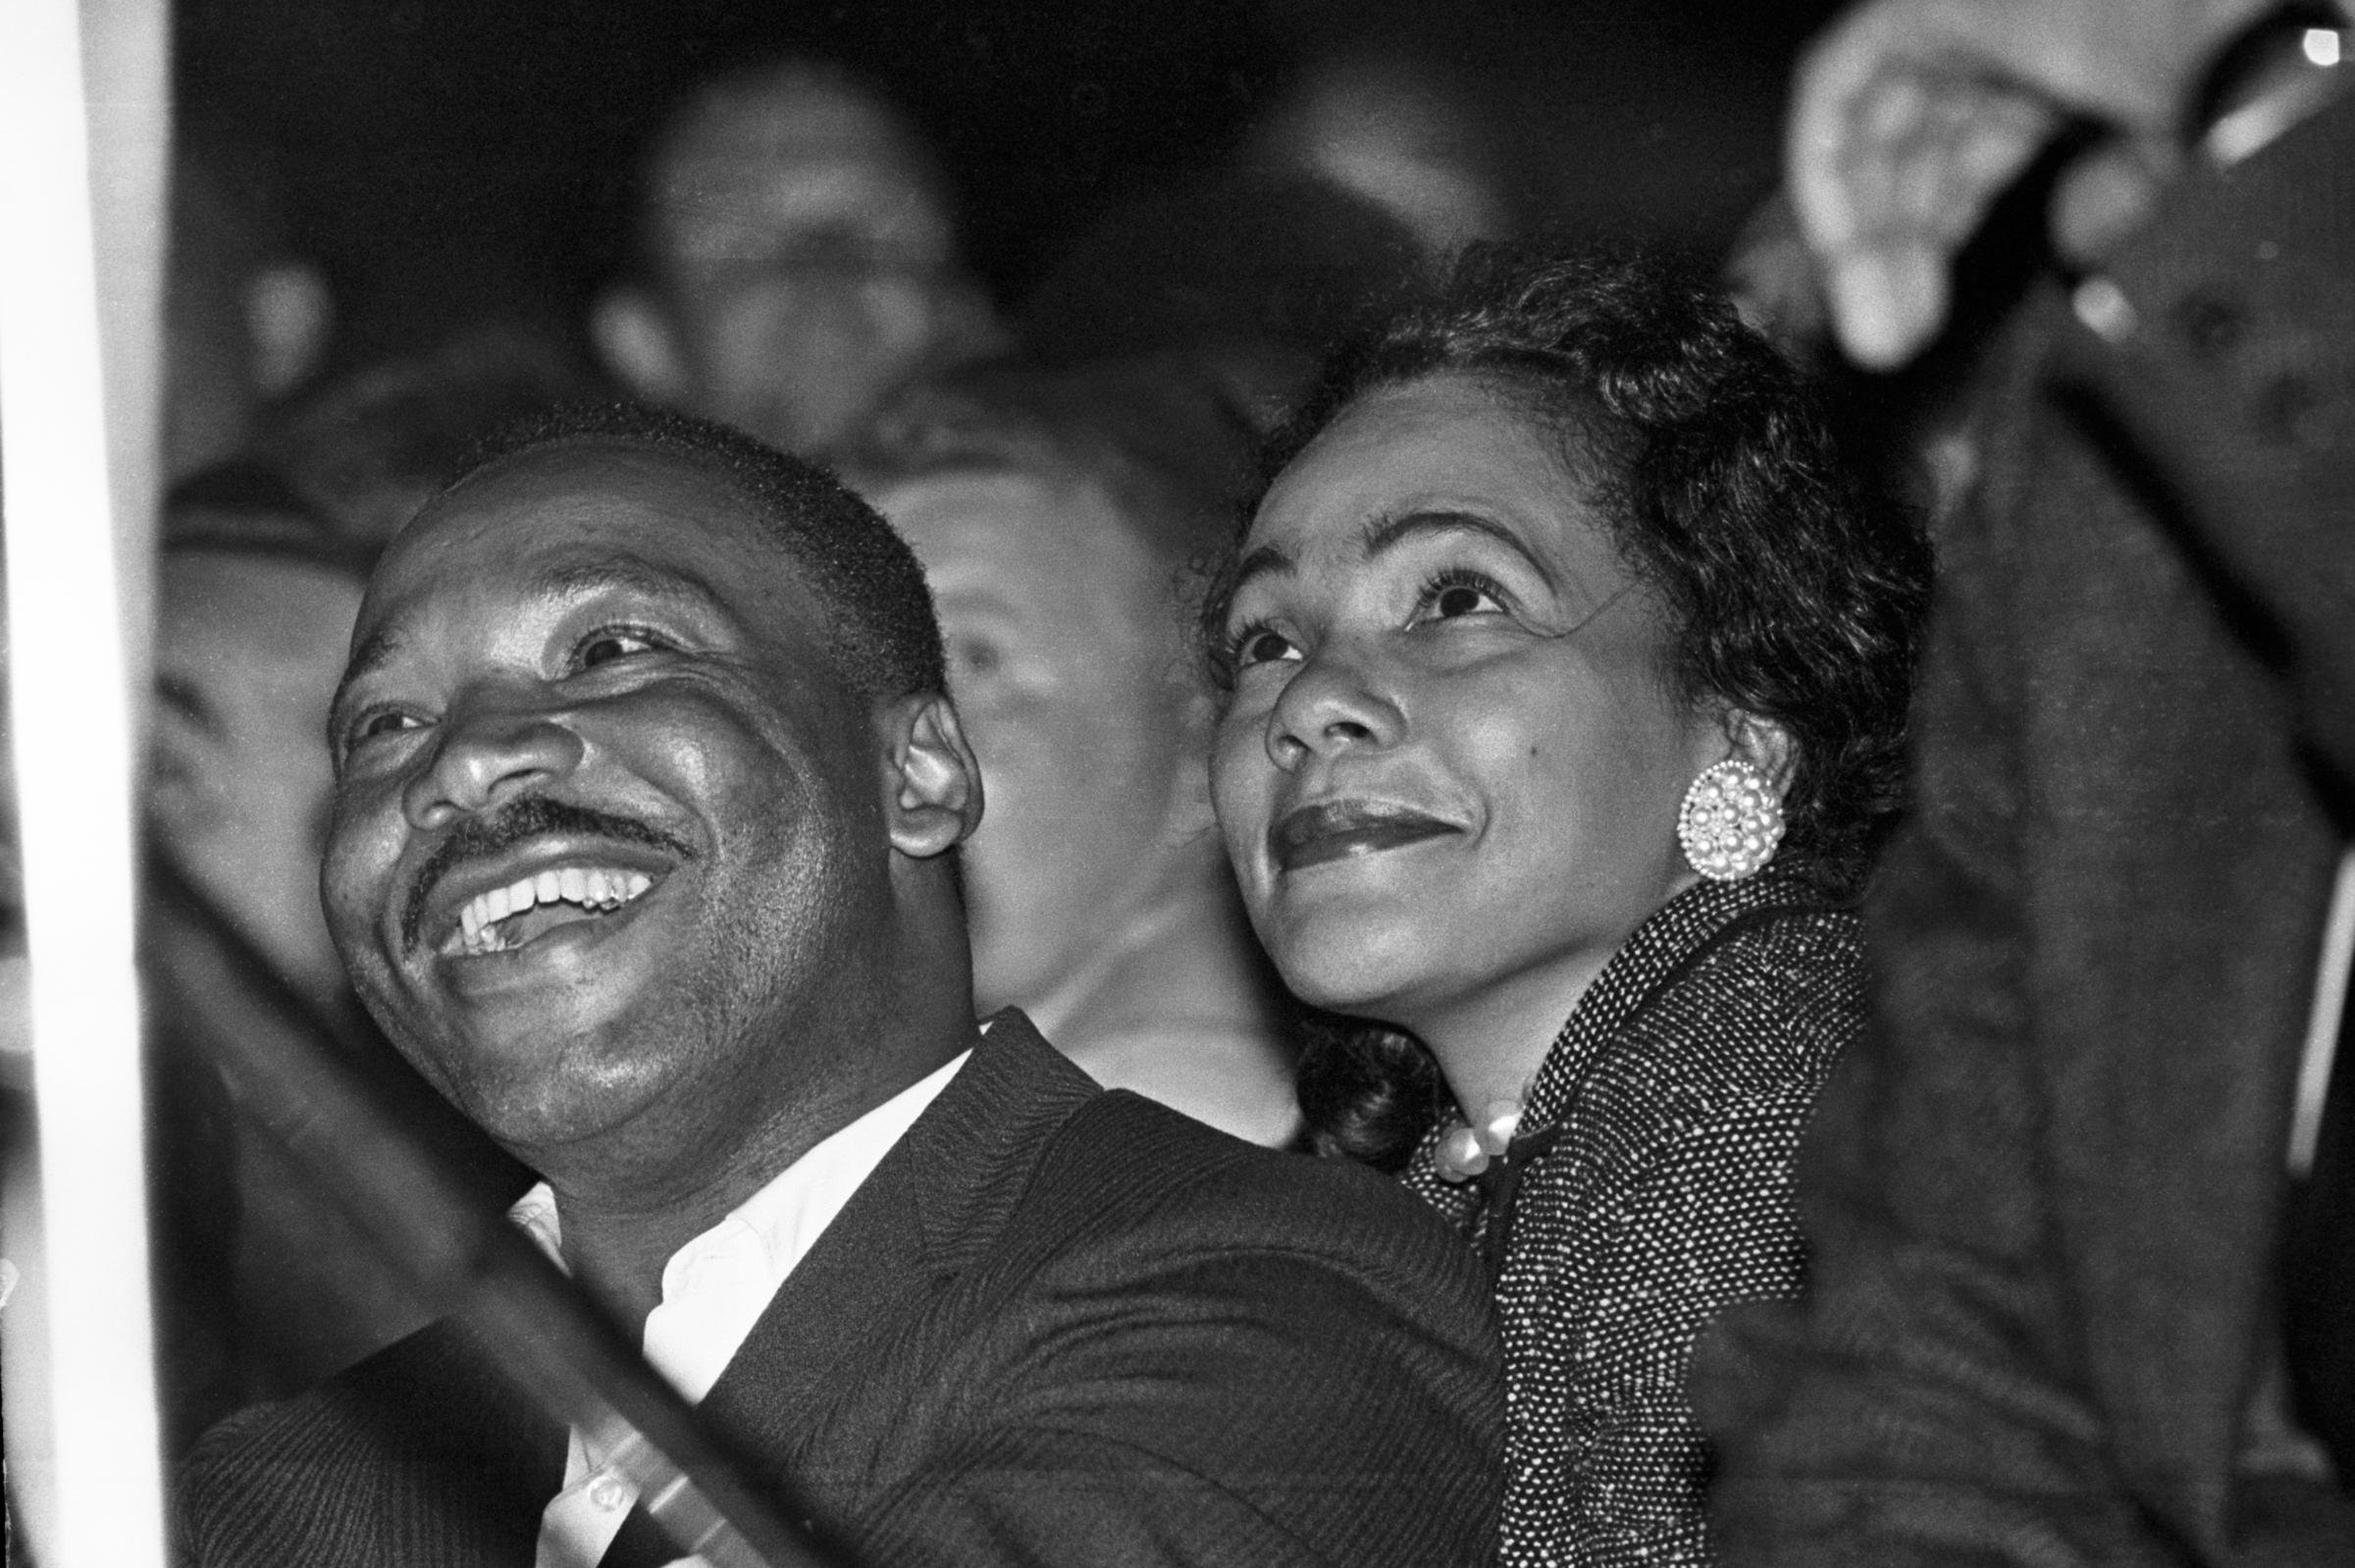 martin luther king jr s role in Alberta christine williams king (september 13, 1904 – june 30, 1974) was martin luther king jr's mother and the wife of martin luther king sr.